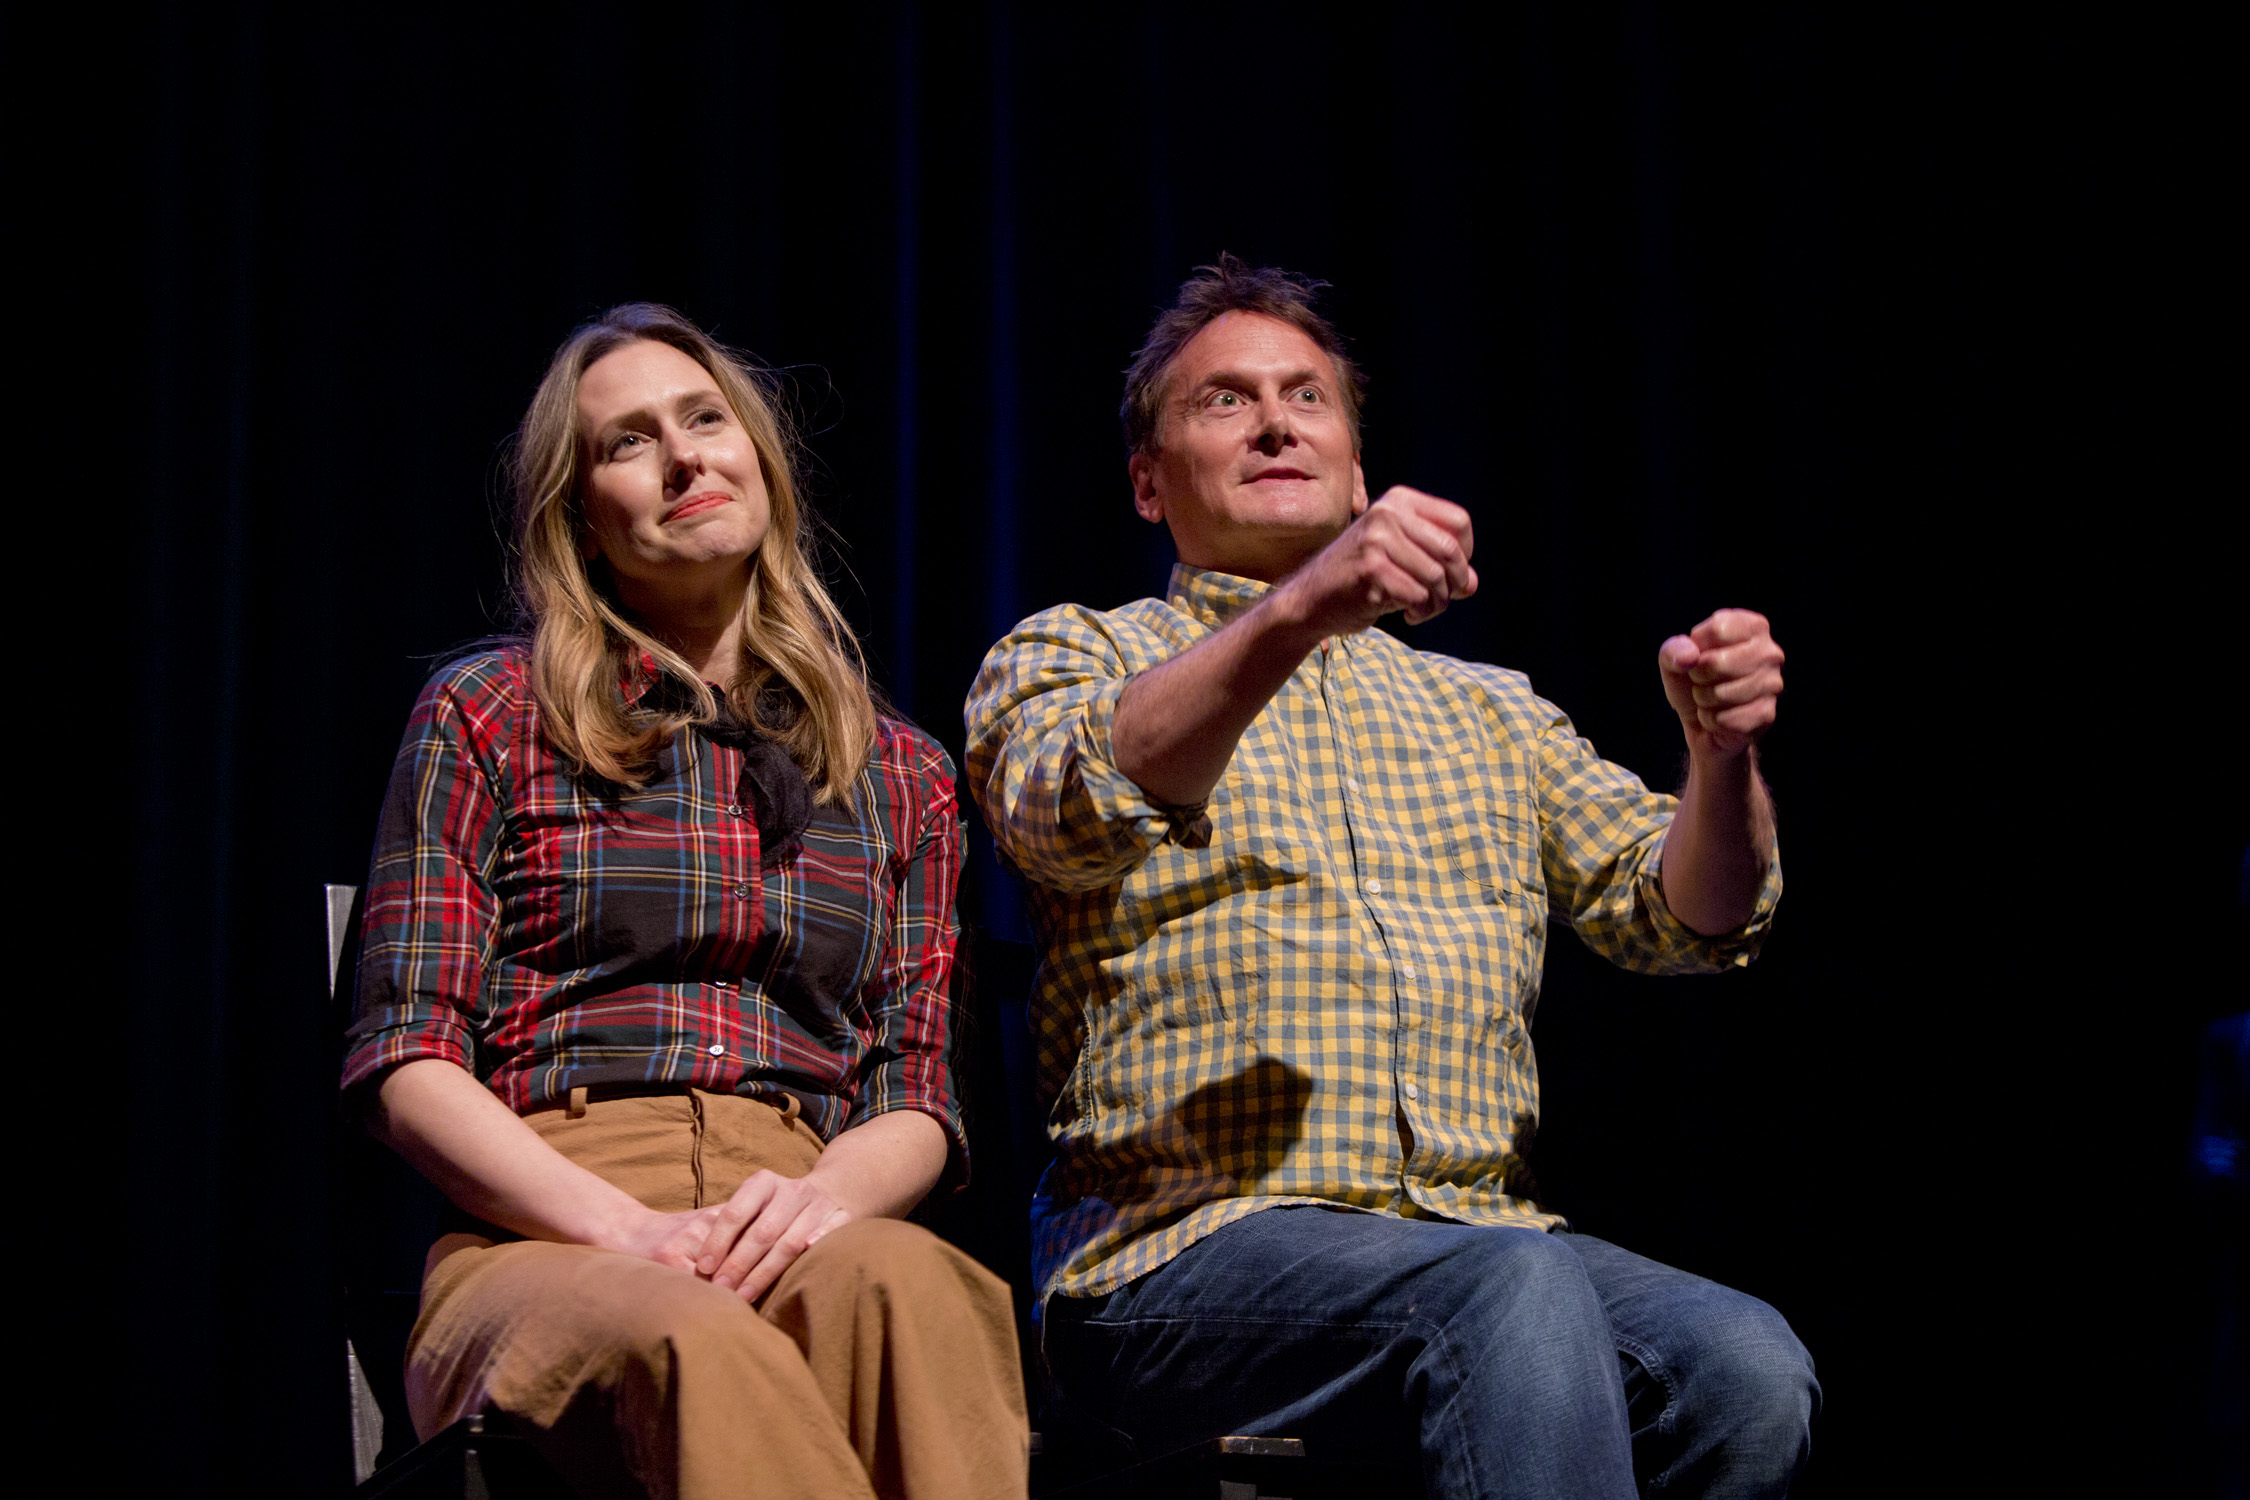 Jessica Makinson and Michael Hitchcock at Theme Park Improv 2017 at SF Sketchfest. Photo by Tommy Lau.